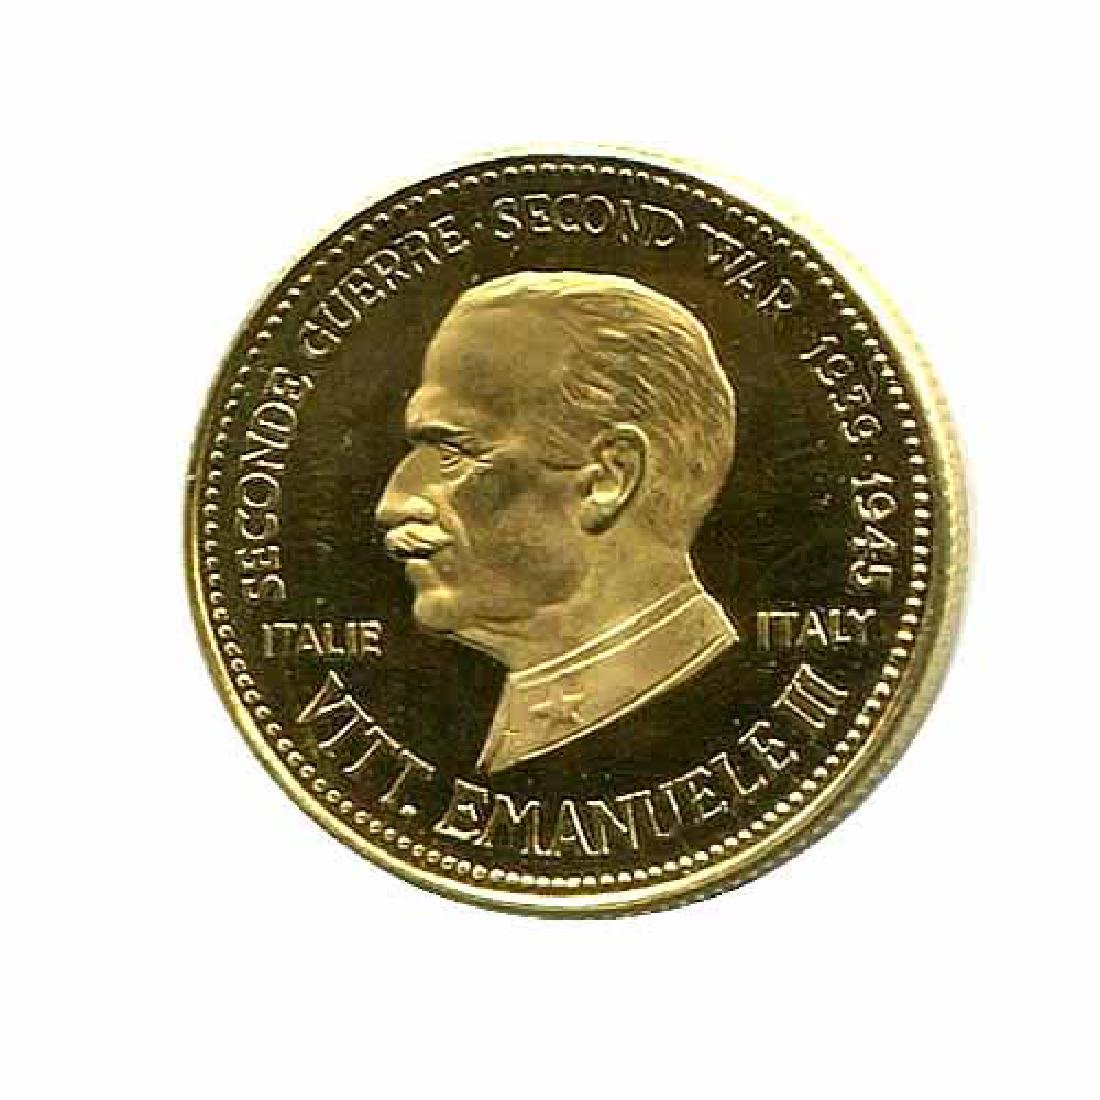 WWII Commemorative Proof Gold Medal 7g. 1958 Vitorrio E